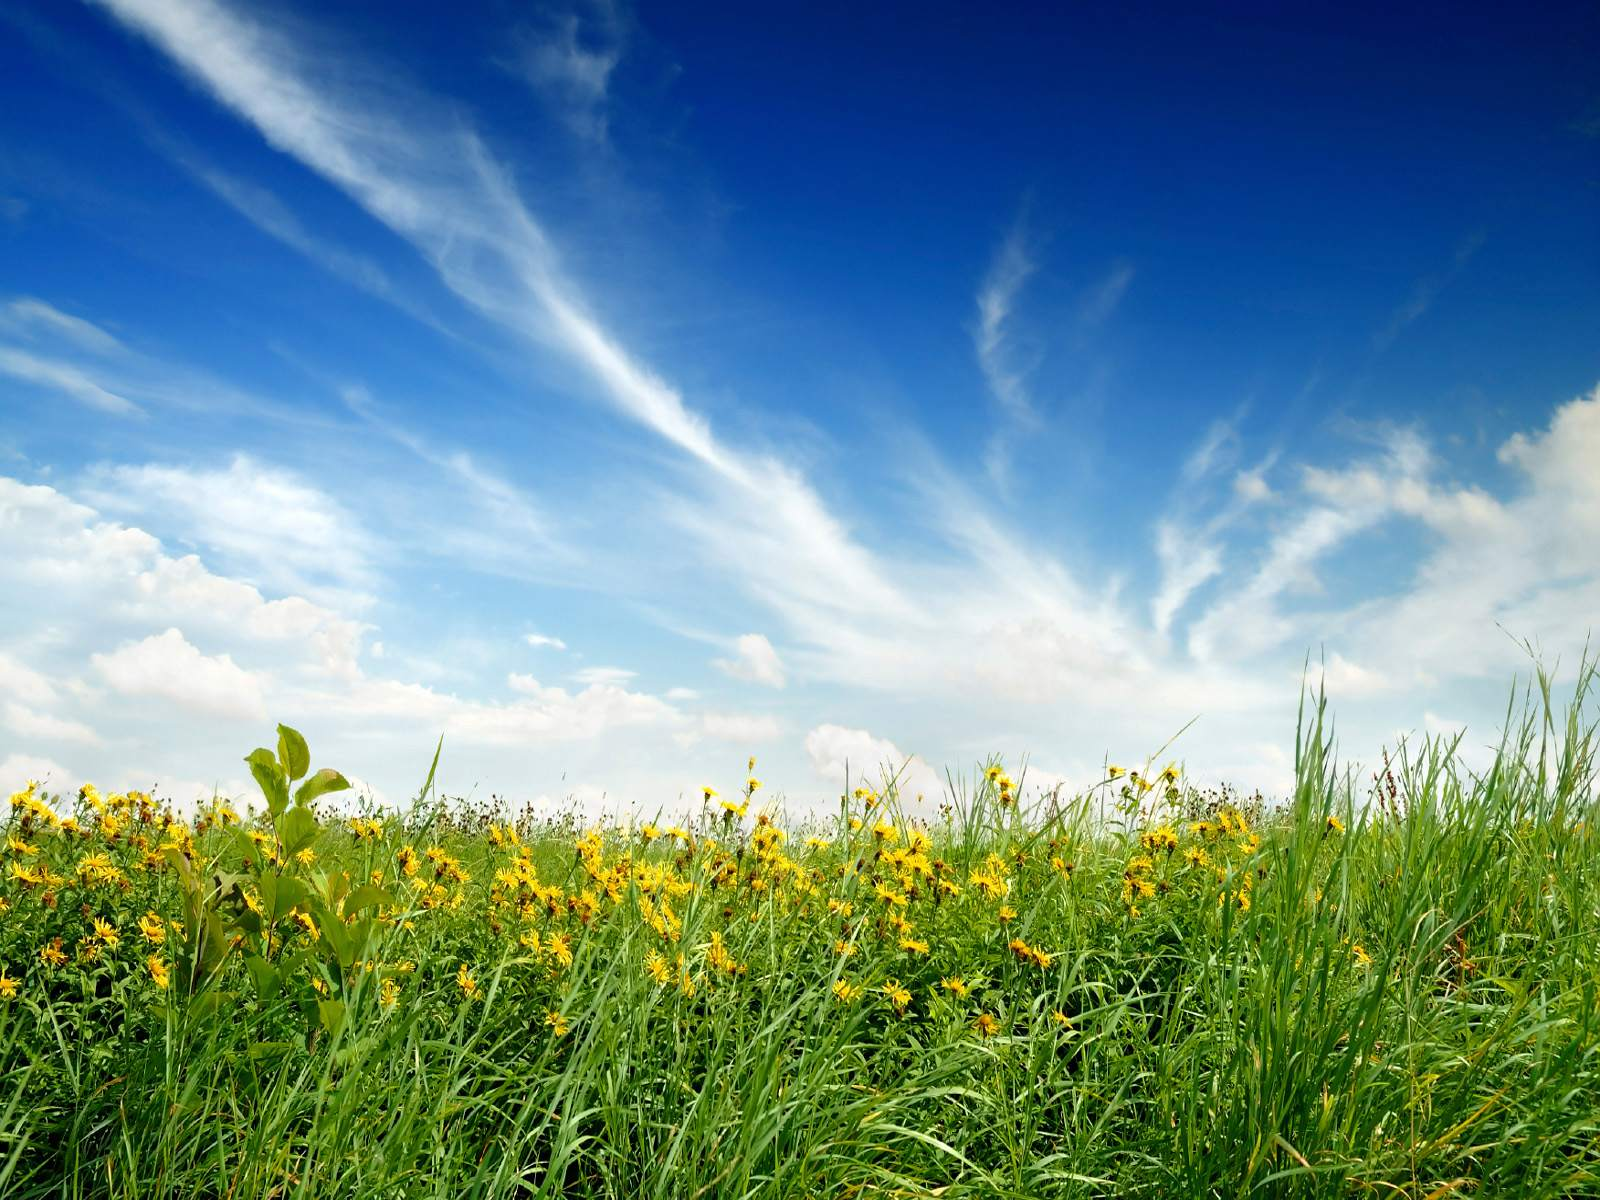 Sunny Nature Day wallpaper